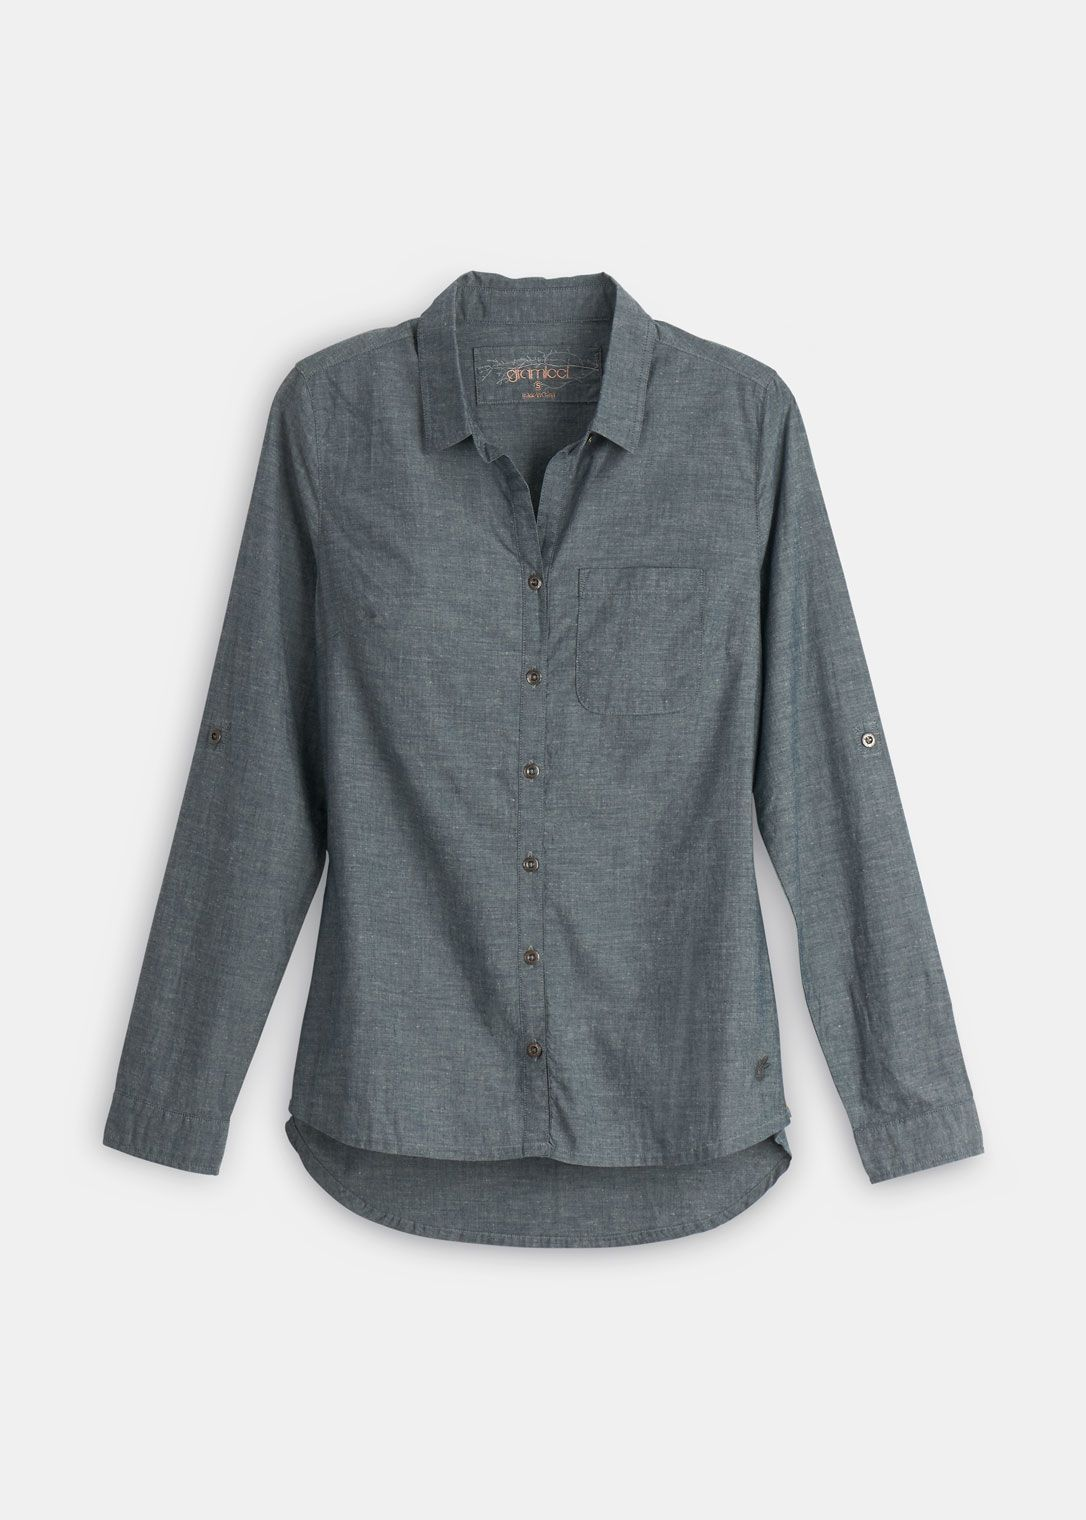 Long sleeve chambray shirt color would be good under a